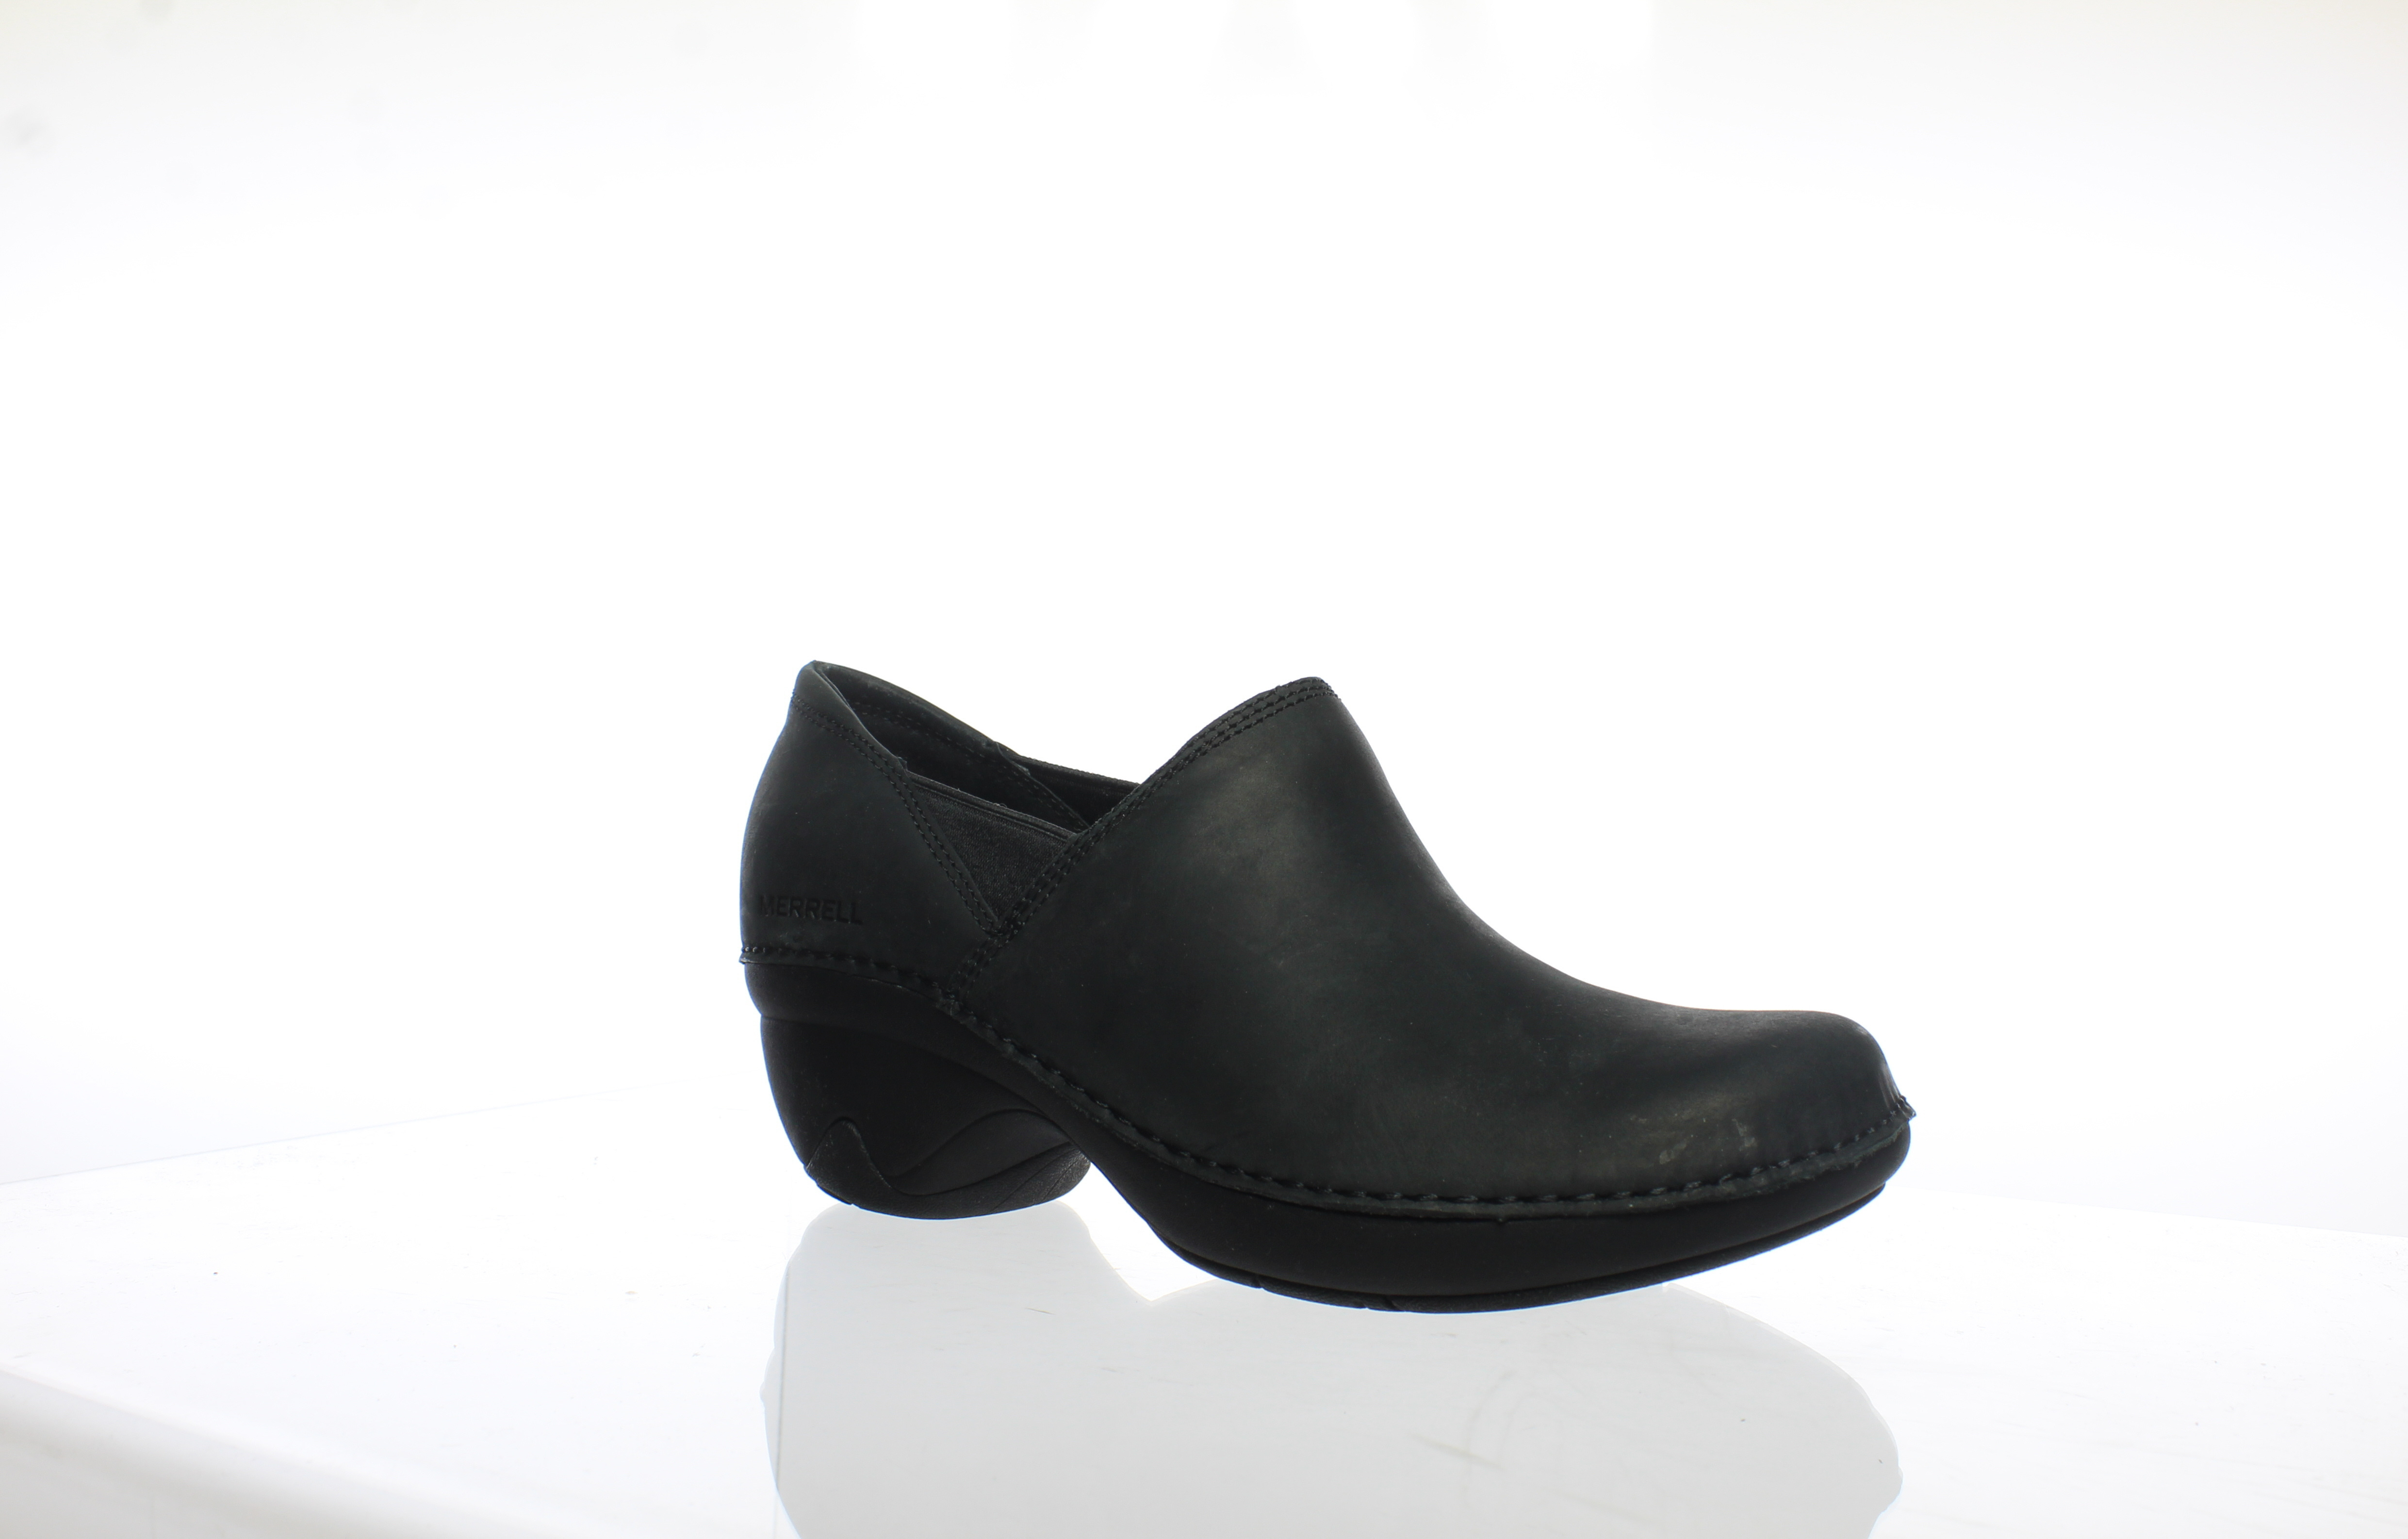 19be9747 Details about Merrell Womens Emma Black Heeled Clogs Size 6.5 (205218)